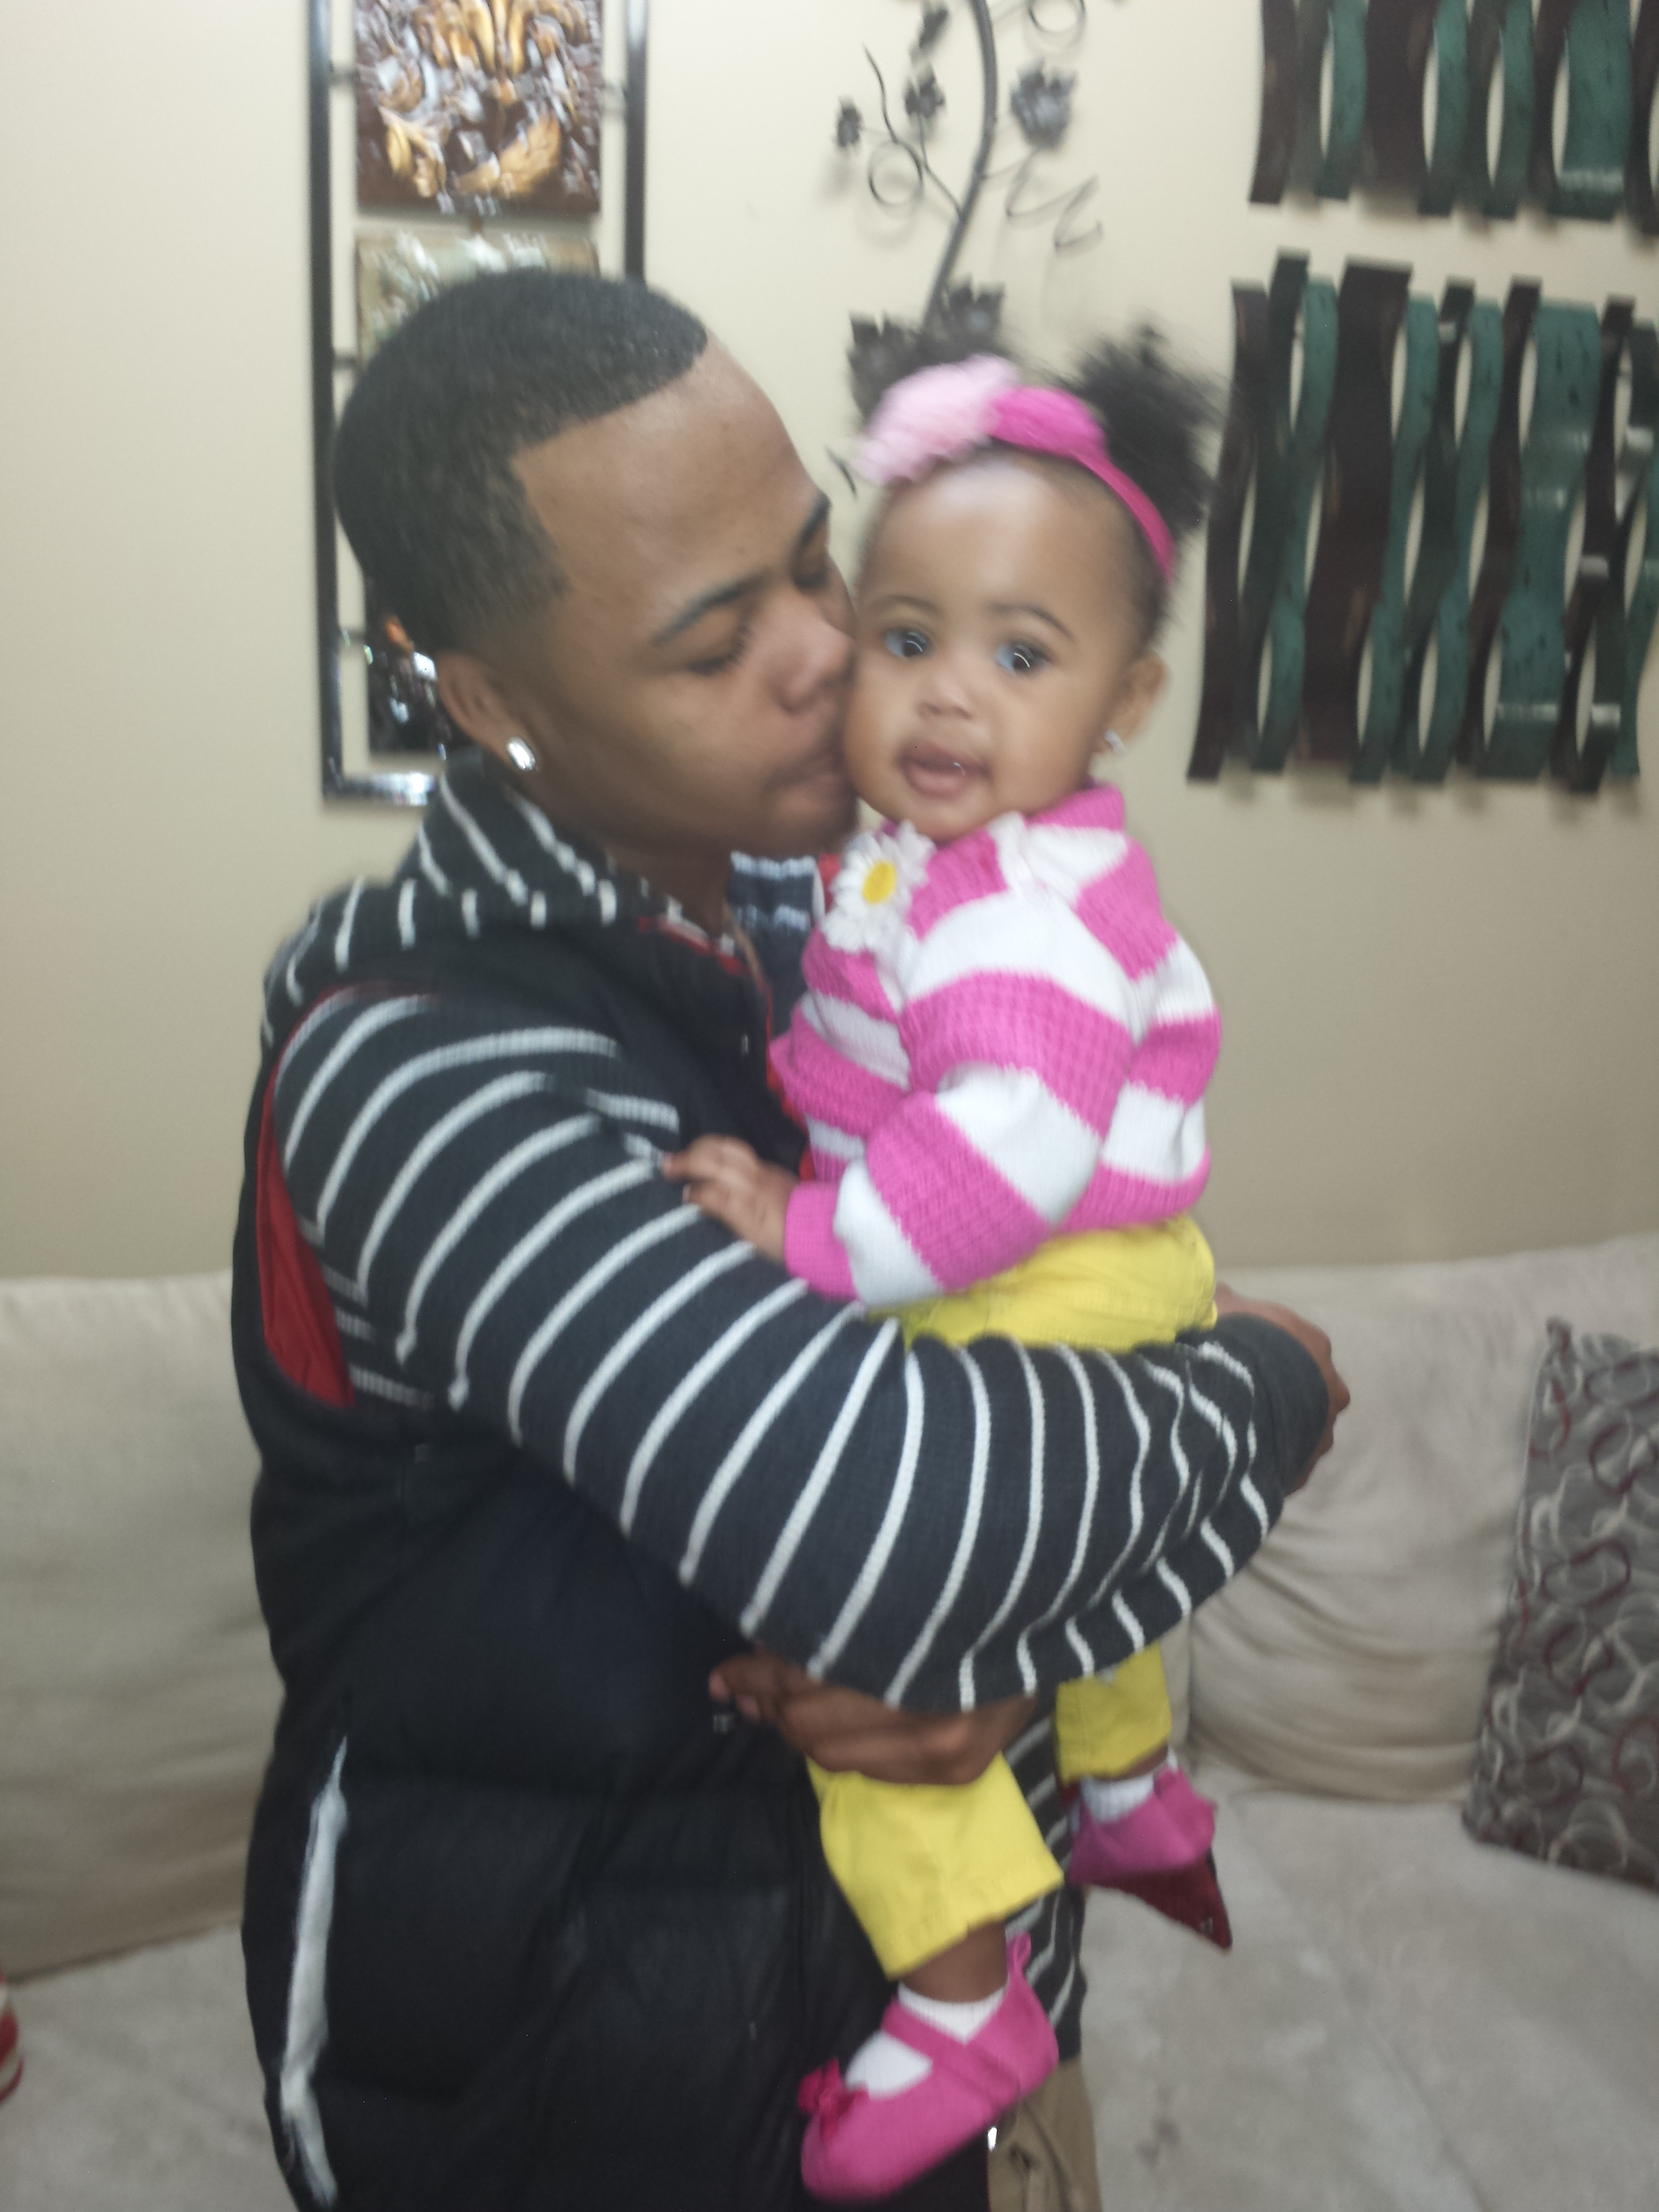 My son and Granddaughter